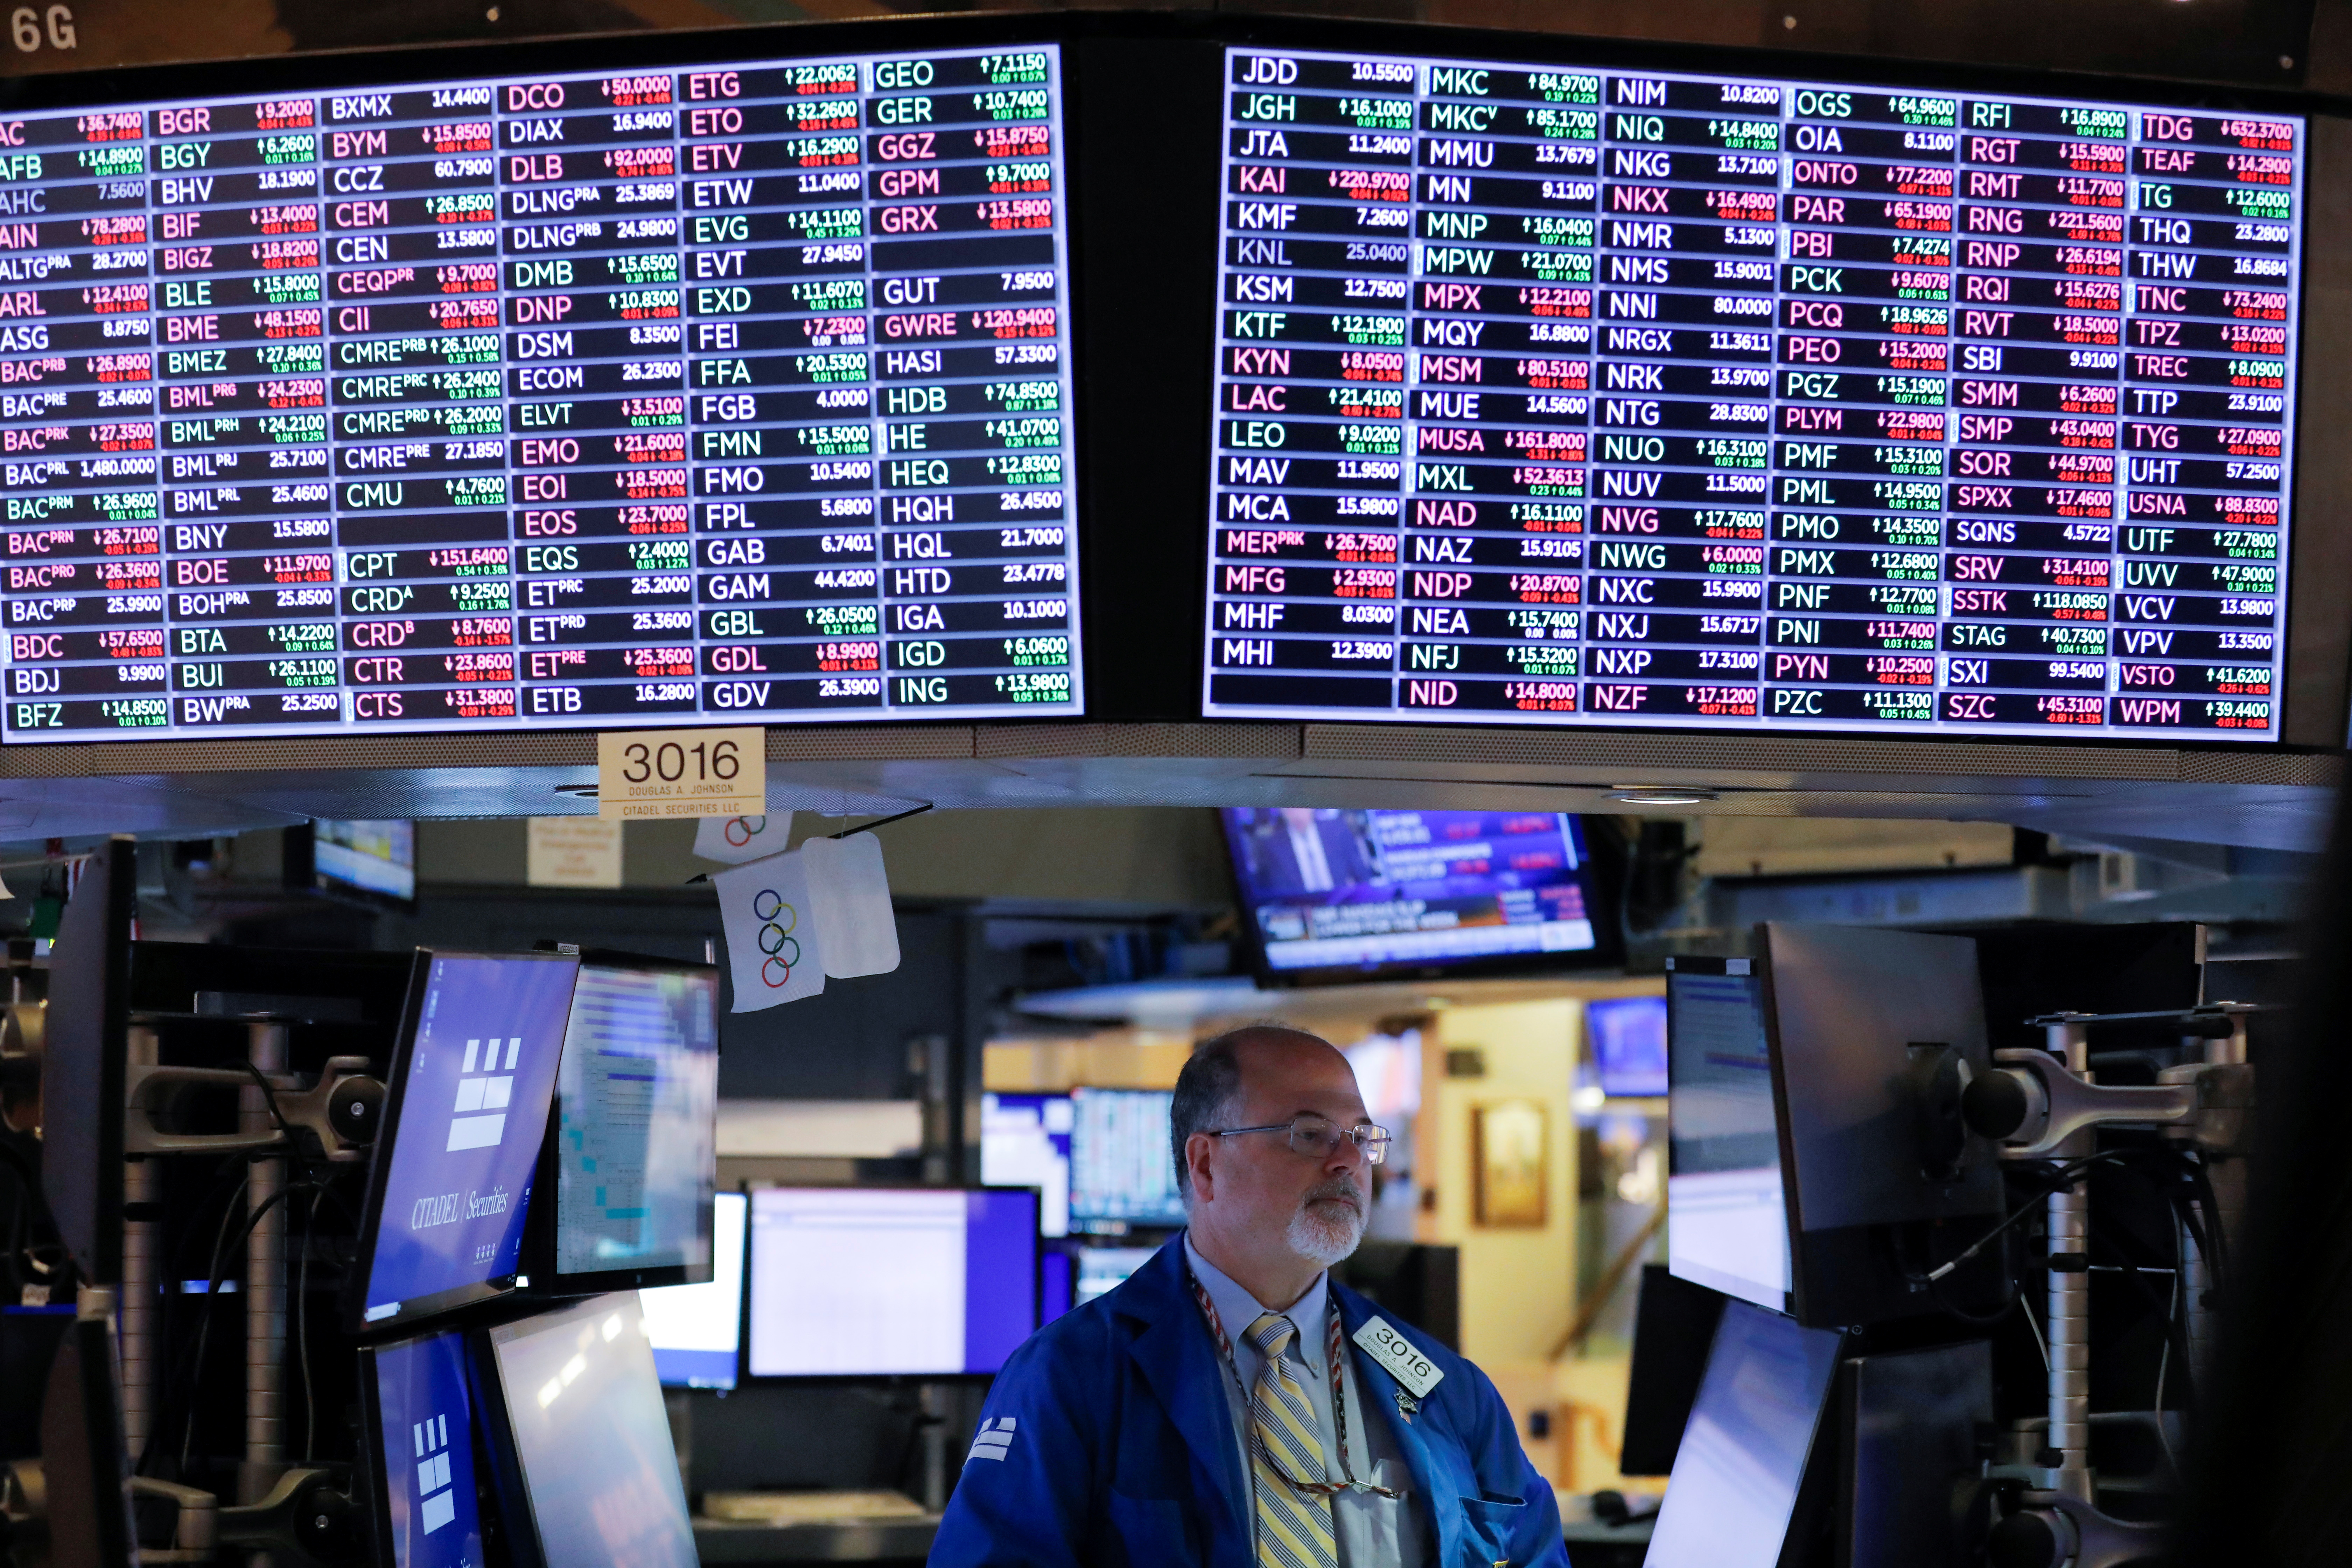 A trader works on the floor at the New York Stock Exchange (NYSE) in Manhattan, New York City, U.S., September 24, 2021. REUTERS/Andrew Kelly